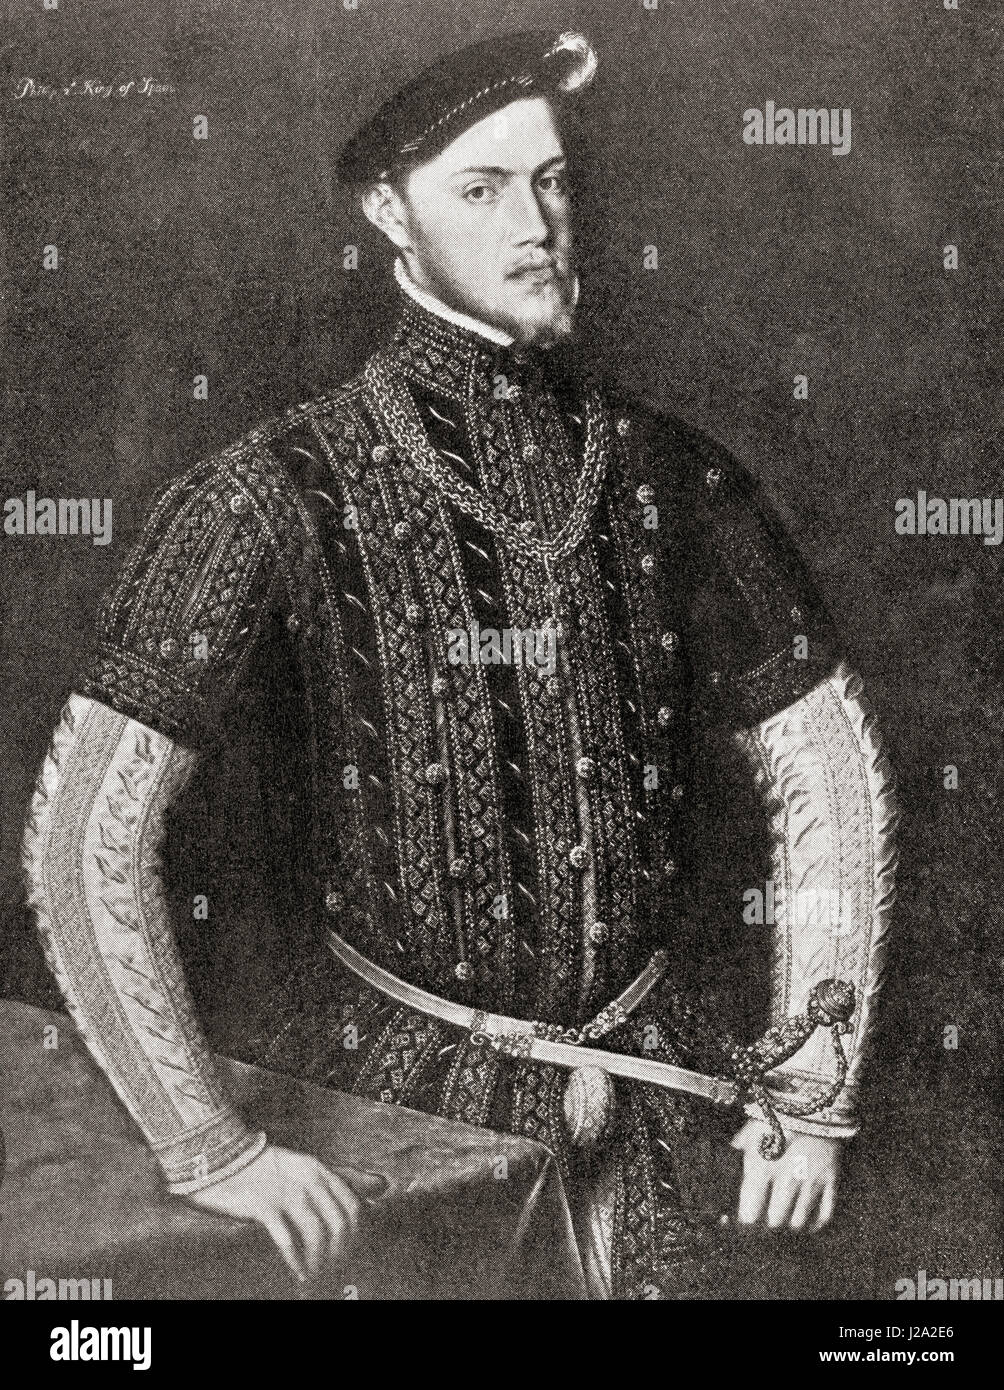 Philip II of Spain, 1527 – 1598, called 'the Prudent'.  King of Spain, King of Portugal as Philip I, King - Stock Image